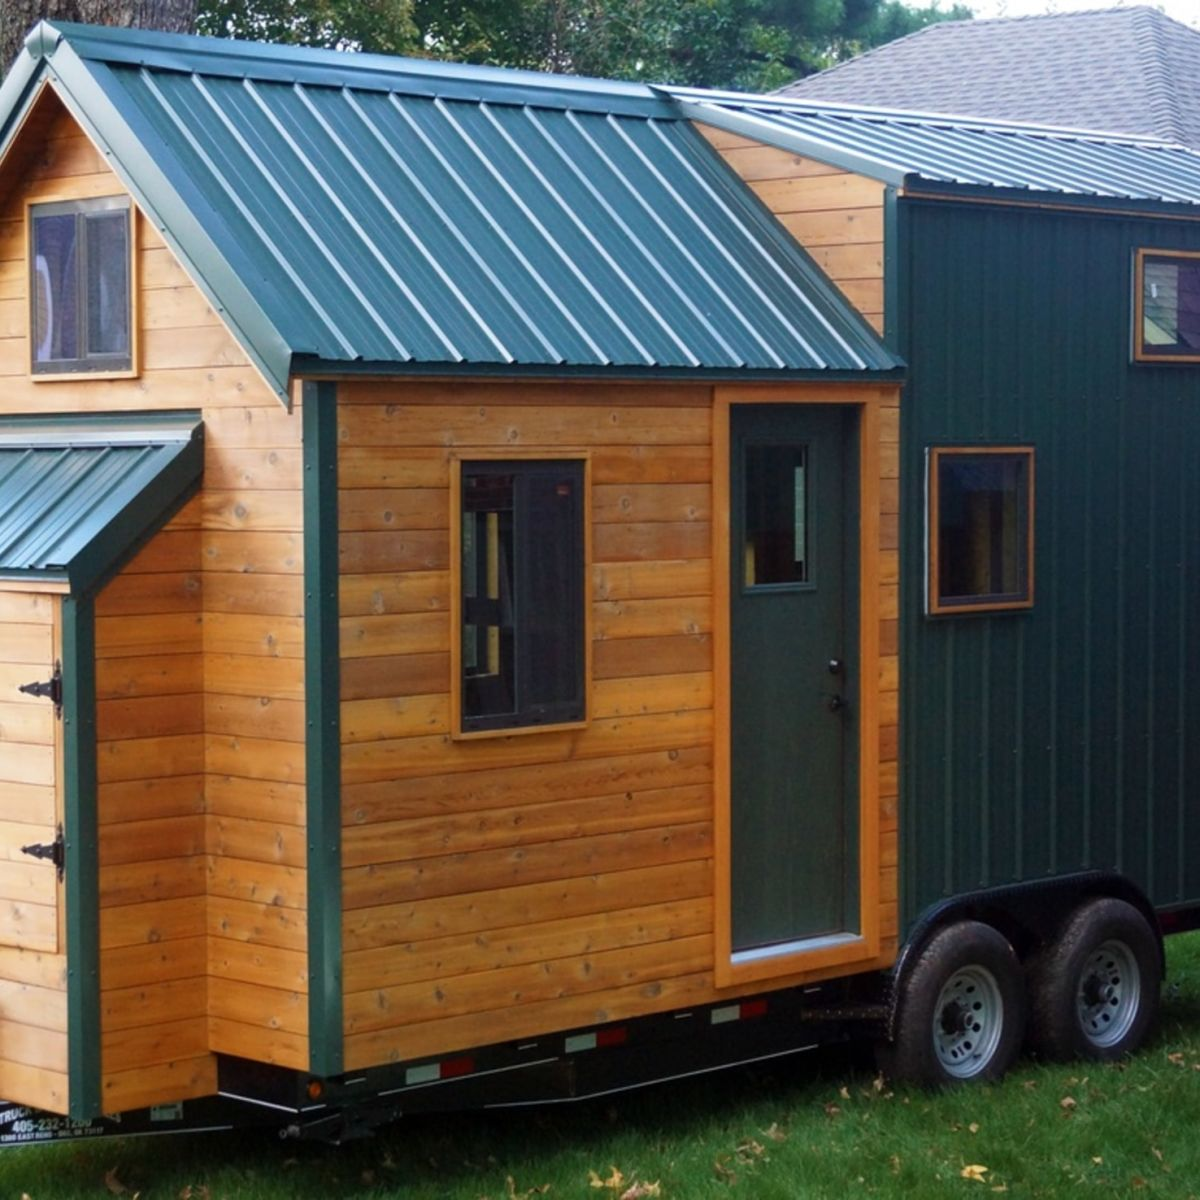 Tiny House on wheels for sale in midtown Tulsa - Tiny House for Sale in  Tulsa, Oklahoma - Tiny House Listings